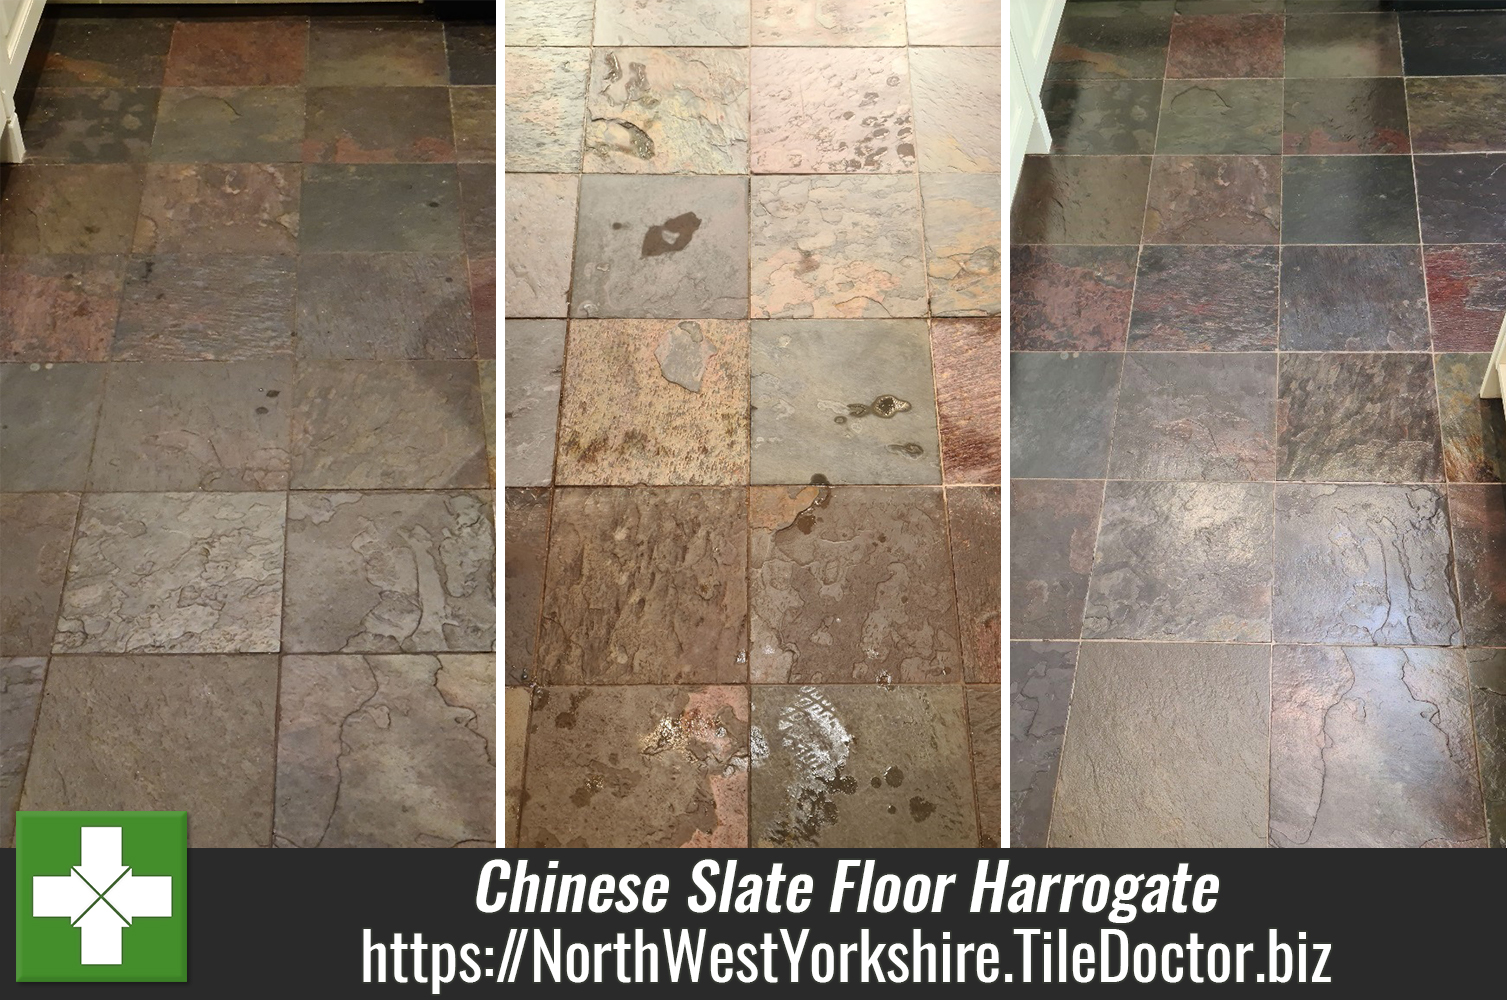 Chinese Slate Floor Revival in Harrogate